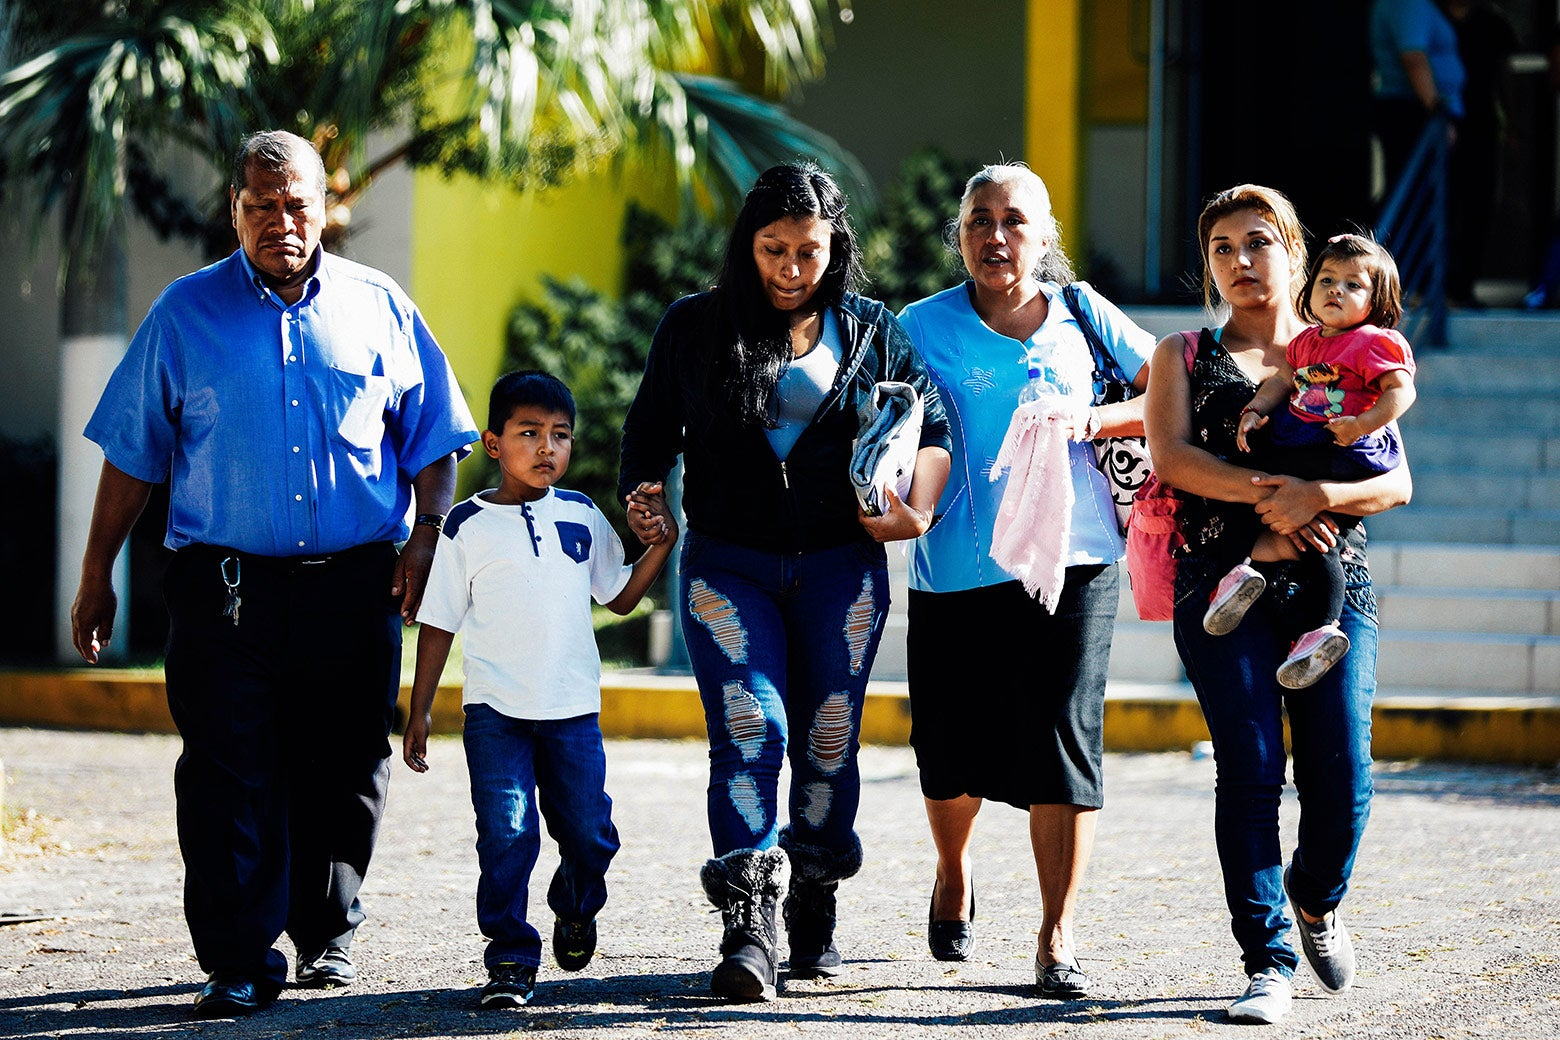 A deportee walks out with her family at an immigration facility in San Salvador, El Salvador, on Jan. 11.